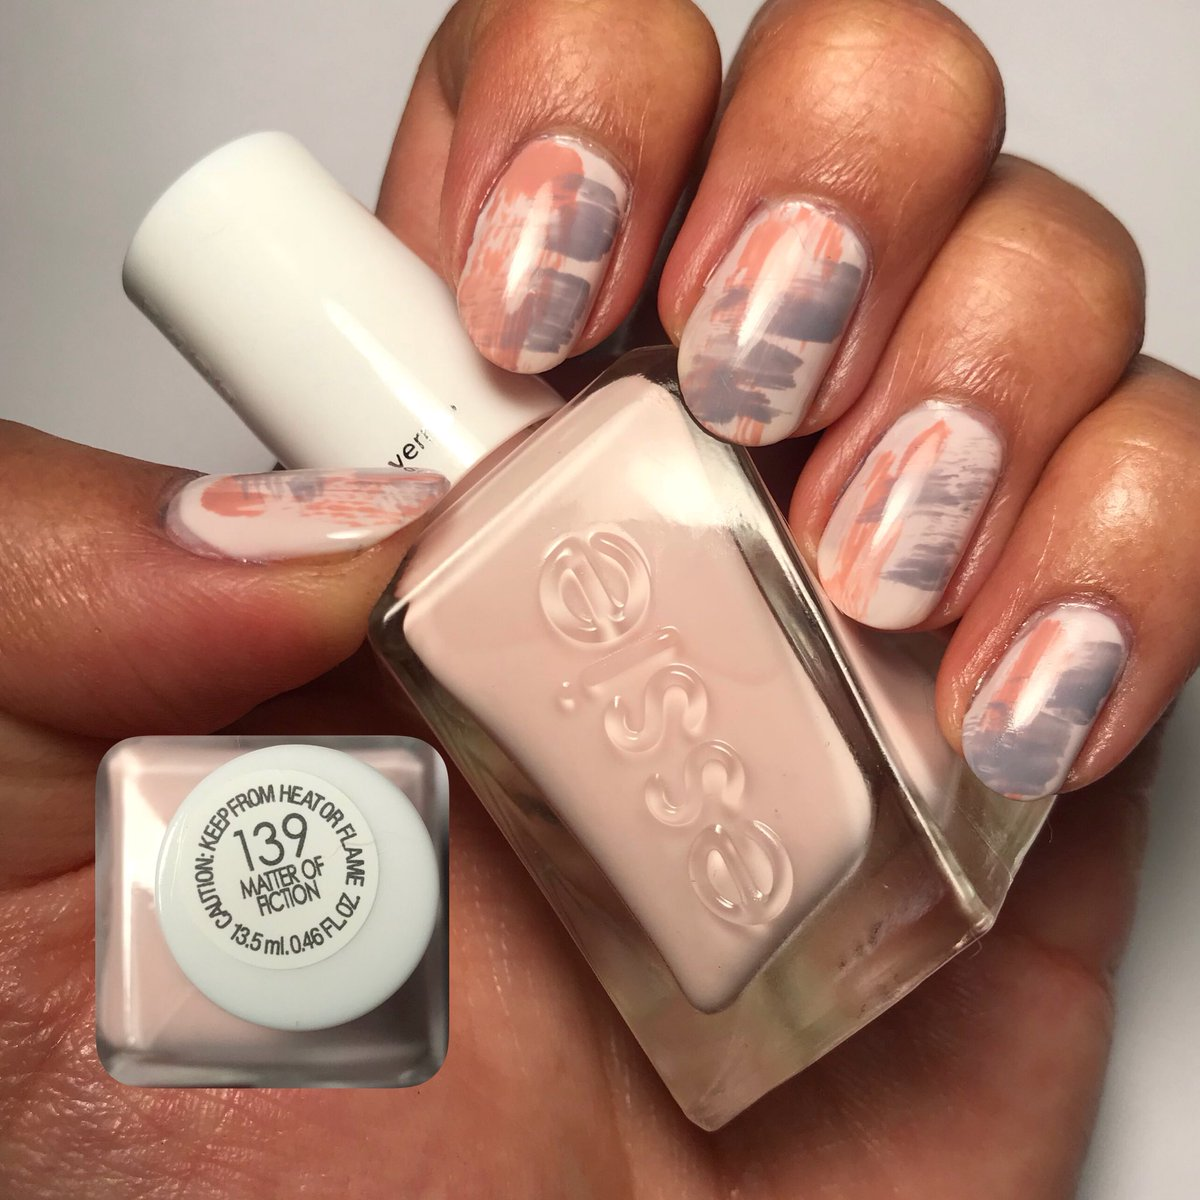 Curlycomedy Nail Art on Twitter: \